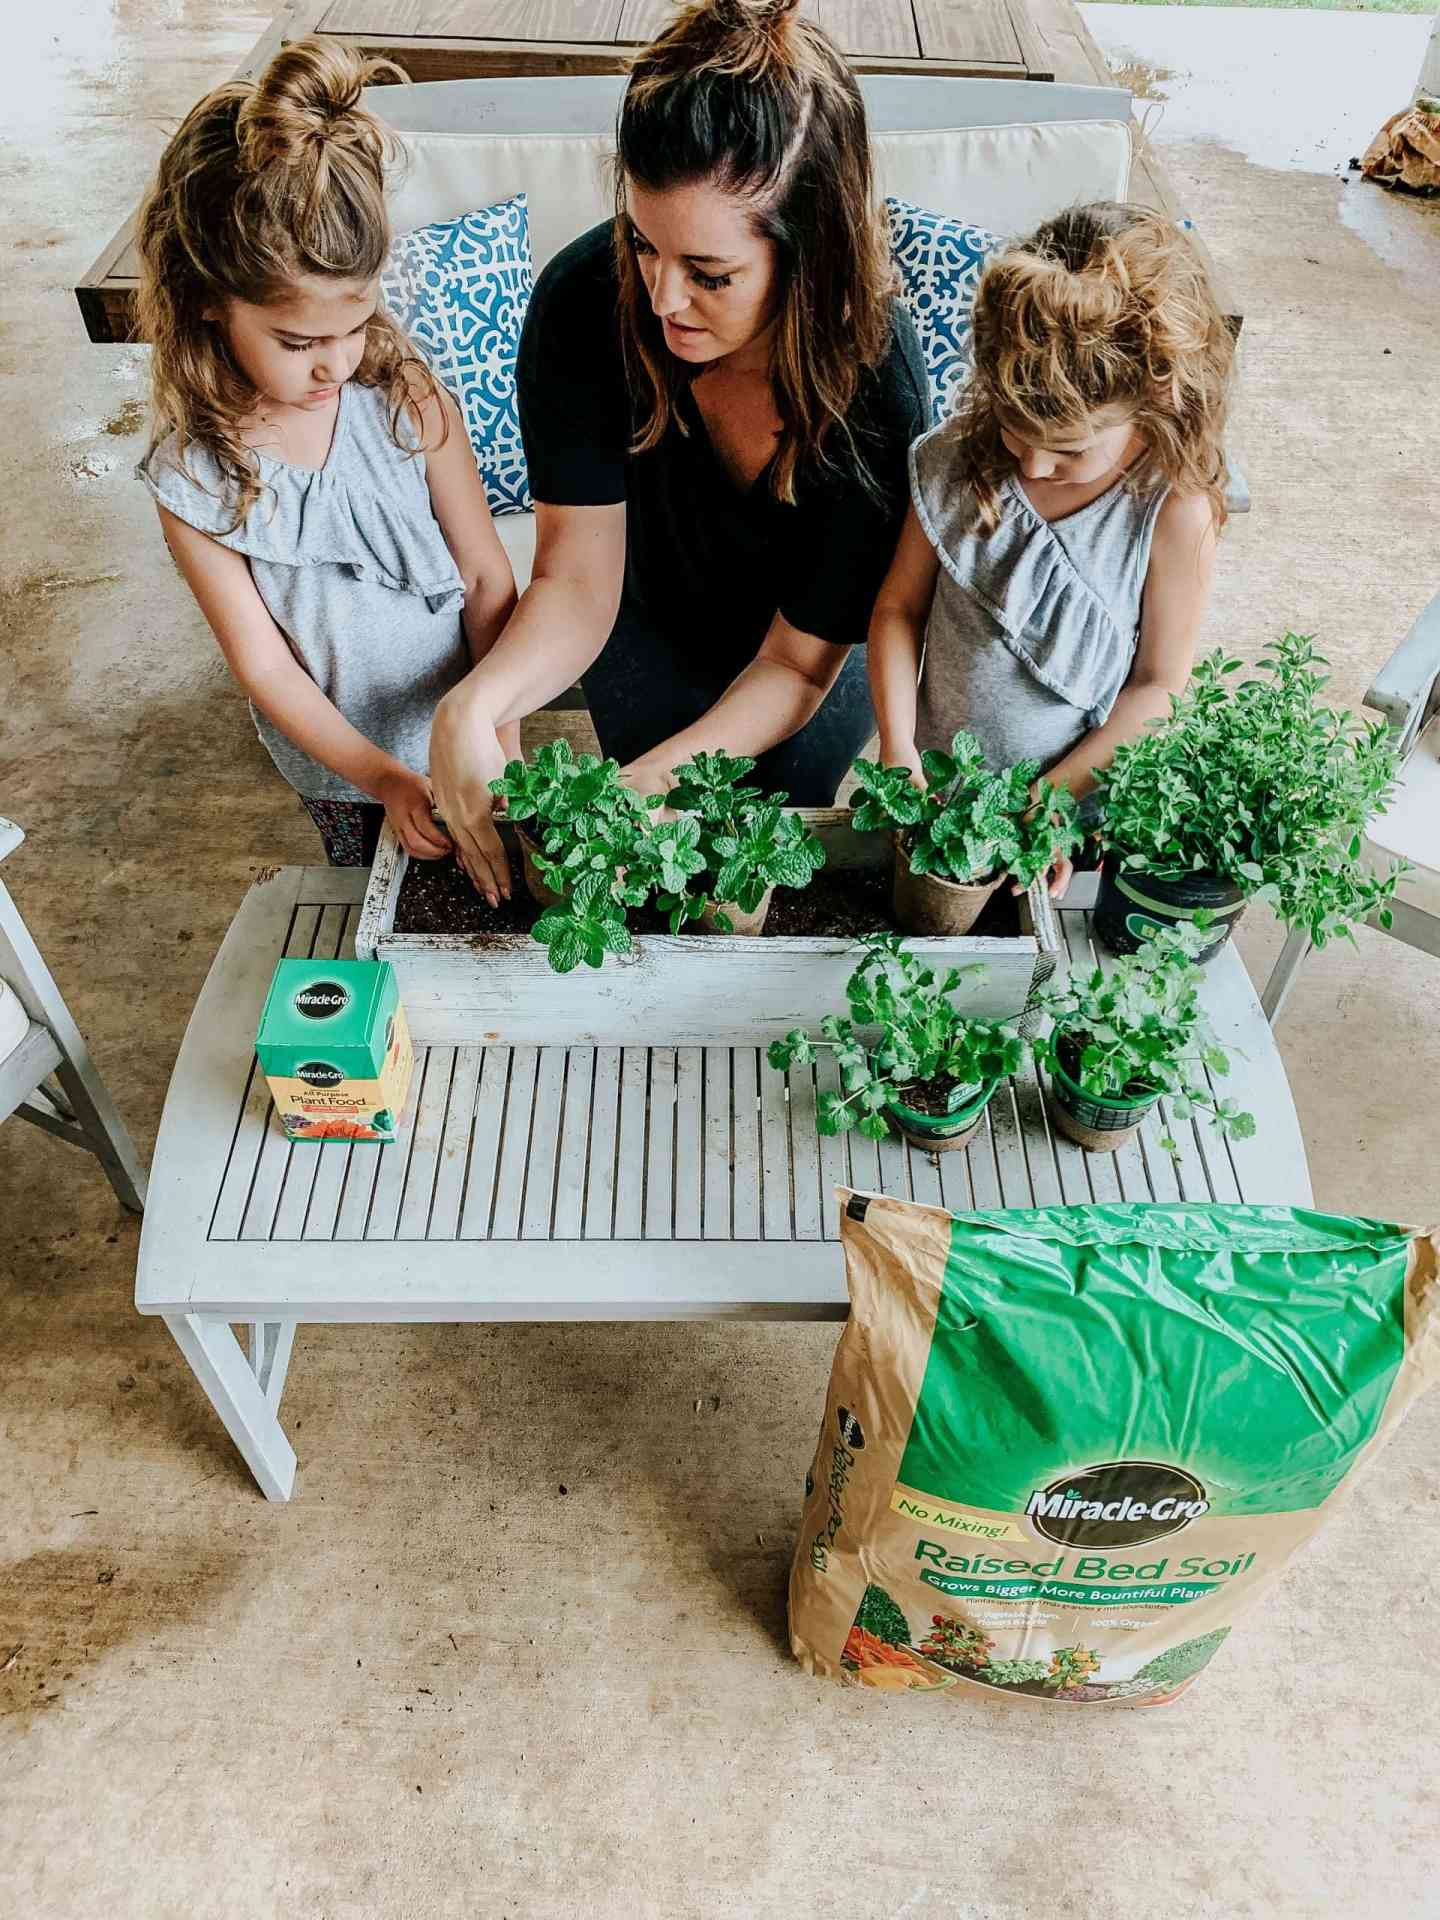 gardening tips for gardening with kids, planting an herb garden, garden with kids, raised bed gardening, miracle gro